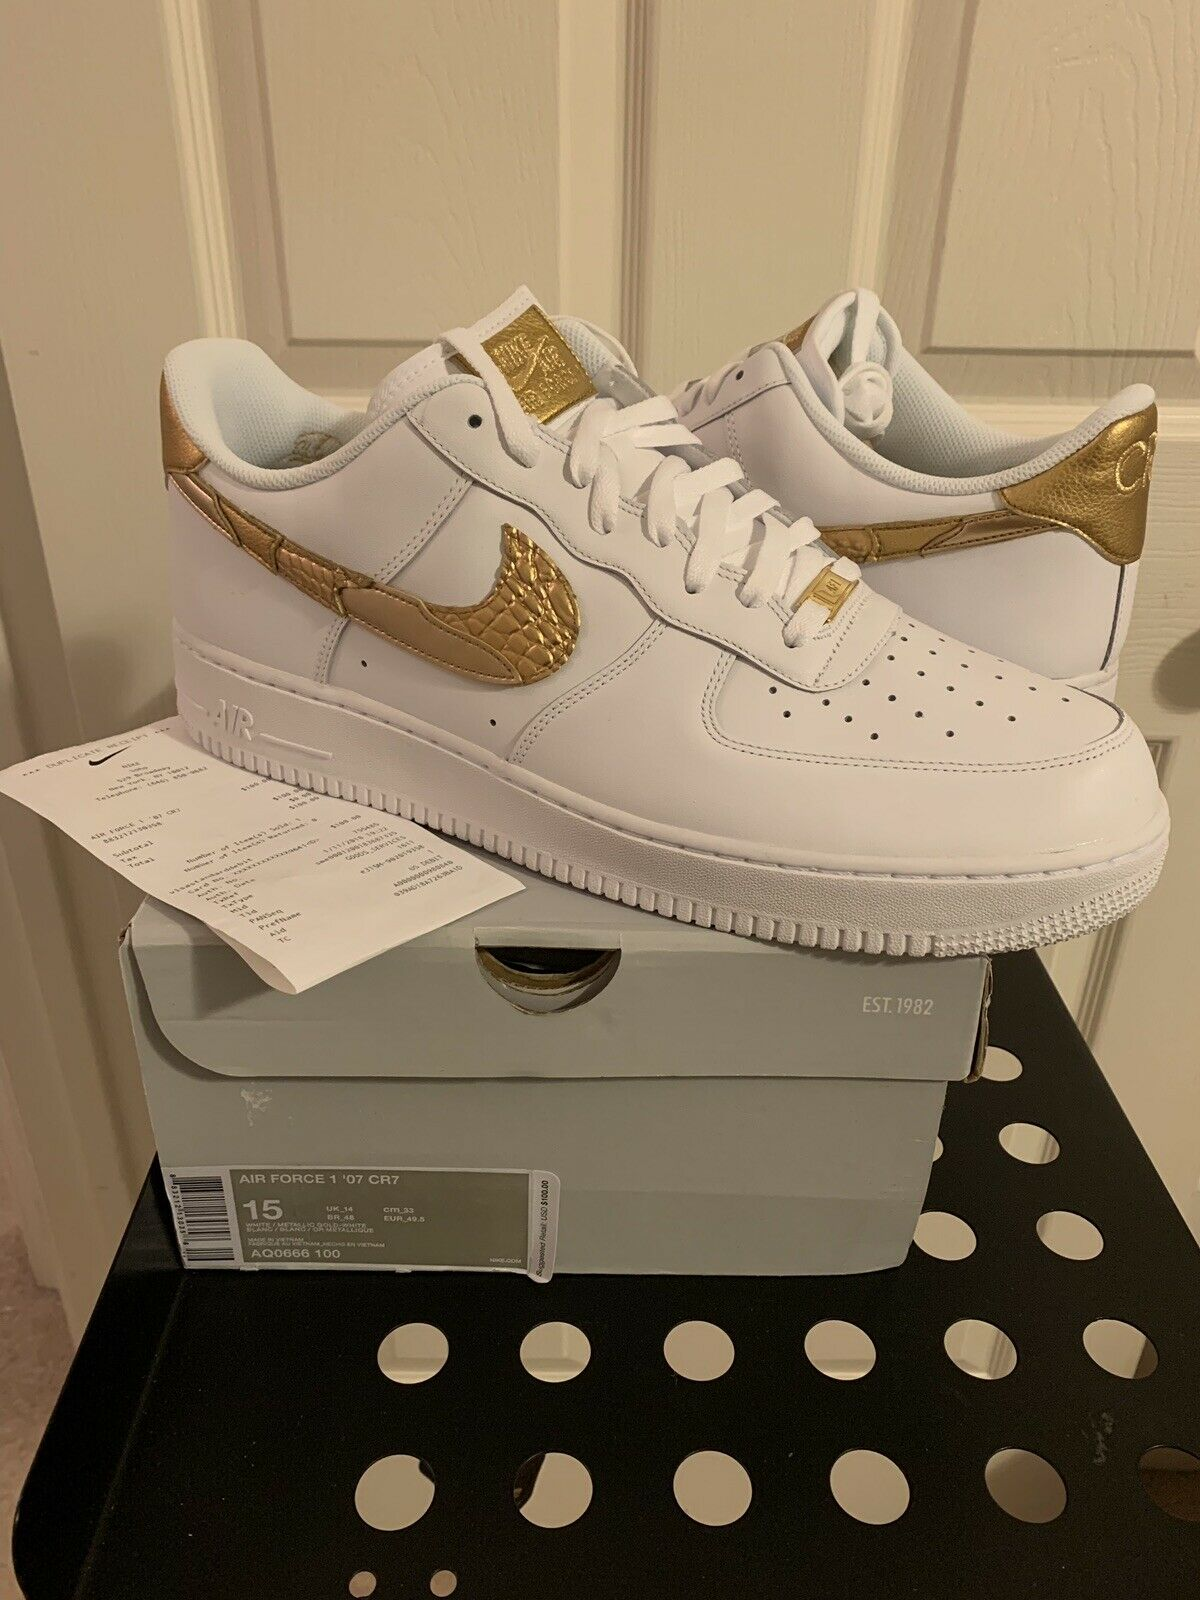 Nike Air Force 1 One Low CR7 gold Patchwork Cristiano Ronaldo Size 15 W Receipt